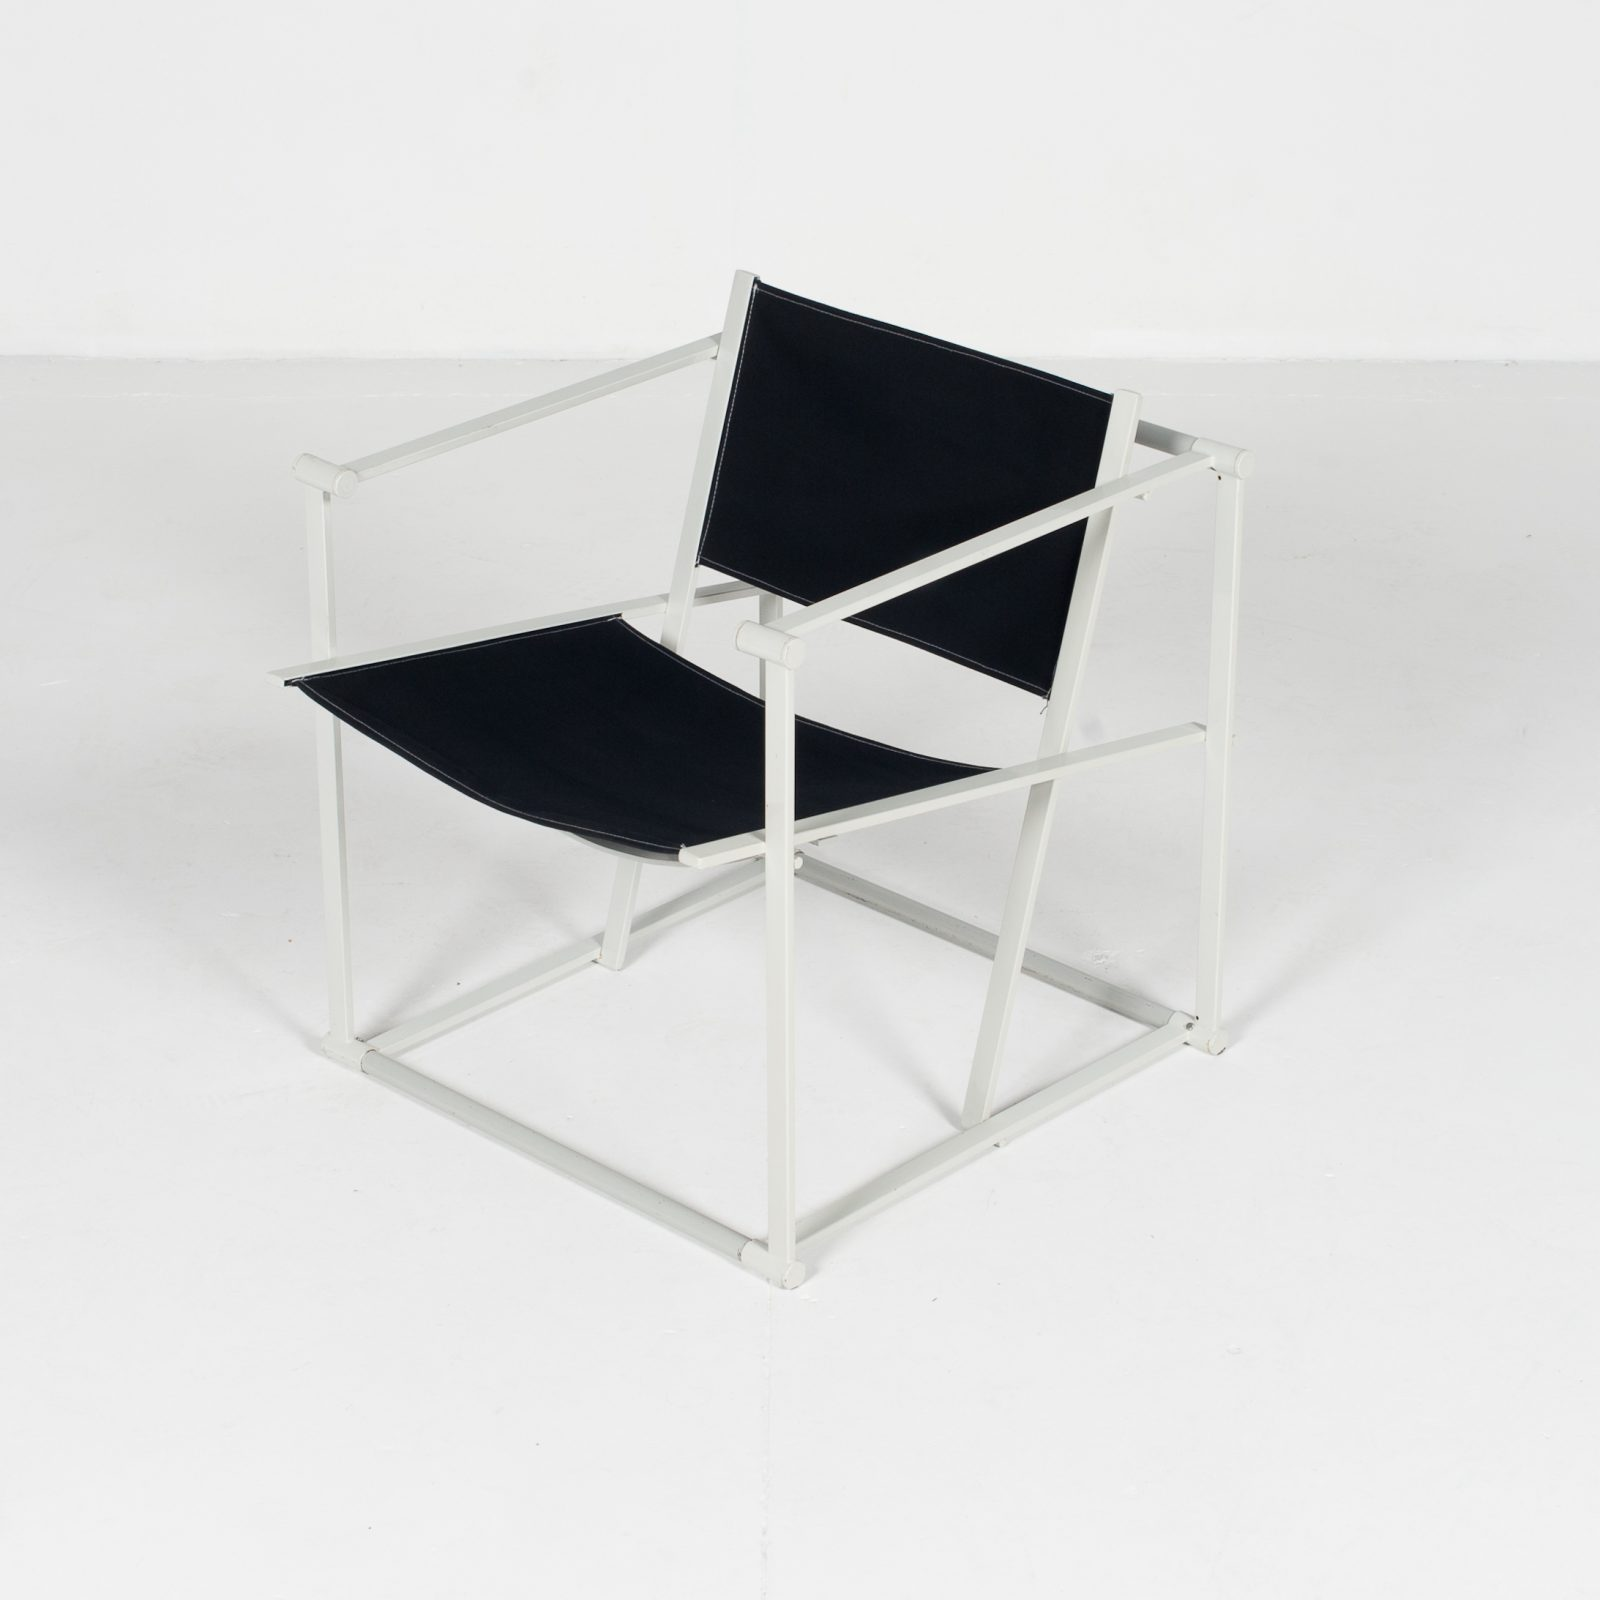 Model Fm60 Cubic Chair By Radboud Van Beekum For Pastoe In Black Canvas And Grey Frame, 1980s, The Netherlands35